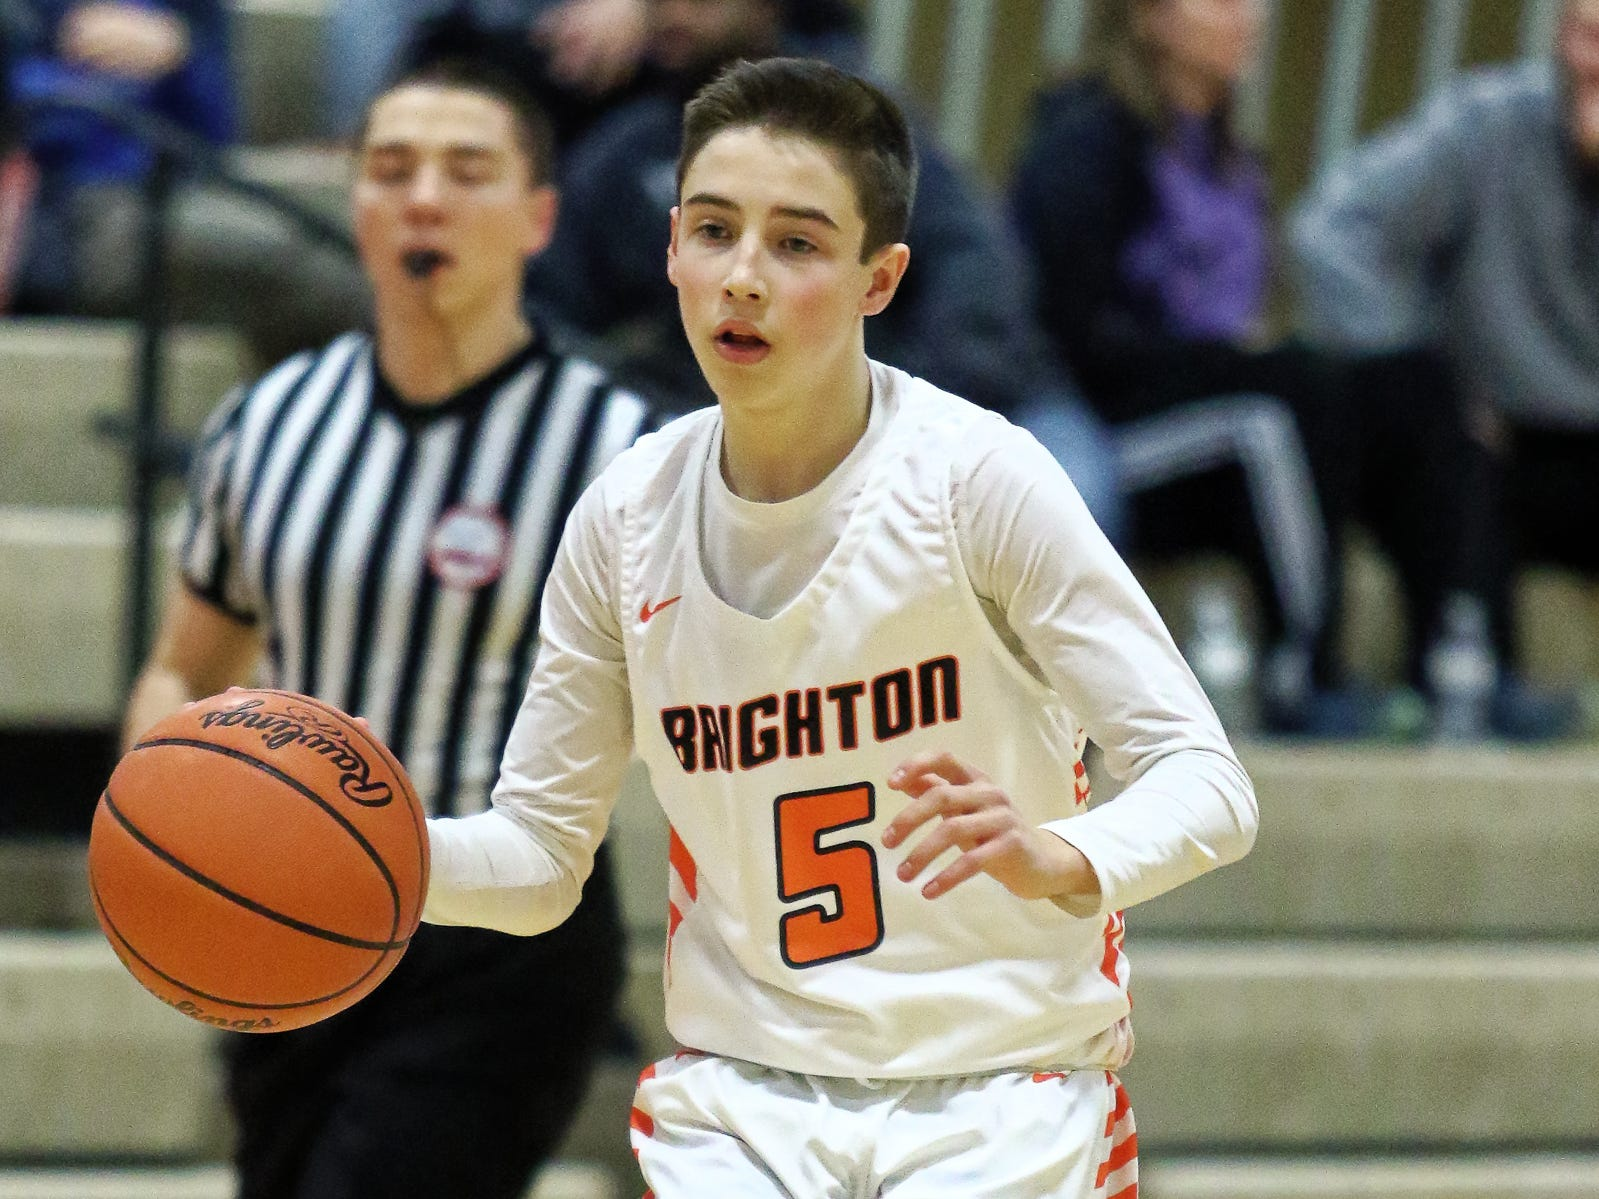 Brighton's Zachary Whalen brings the ball up court in a 60-33 victory over Pinckney on Thursday, Jan. 3, 2019.